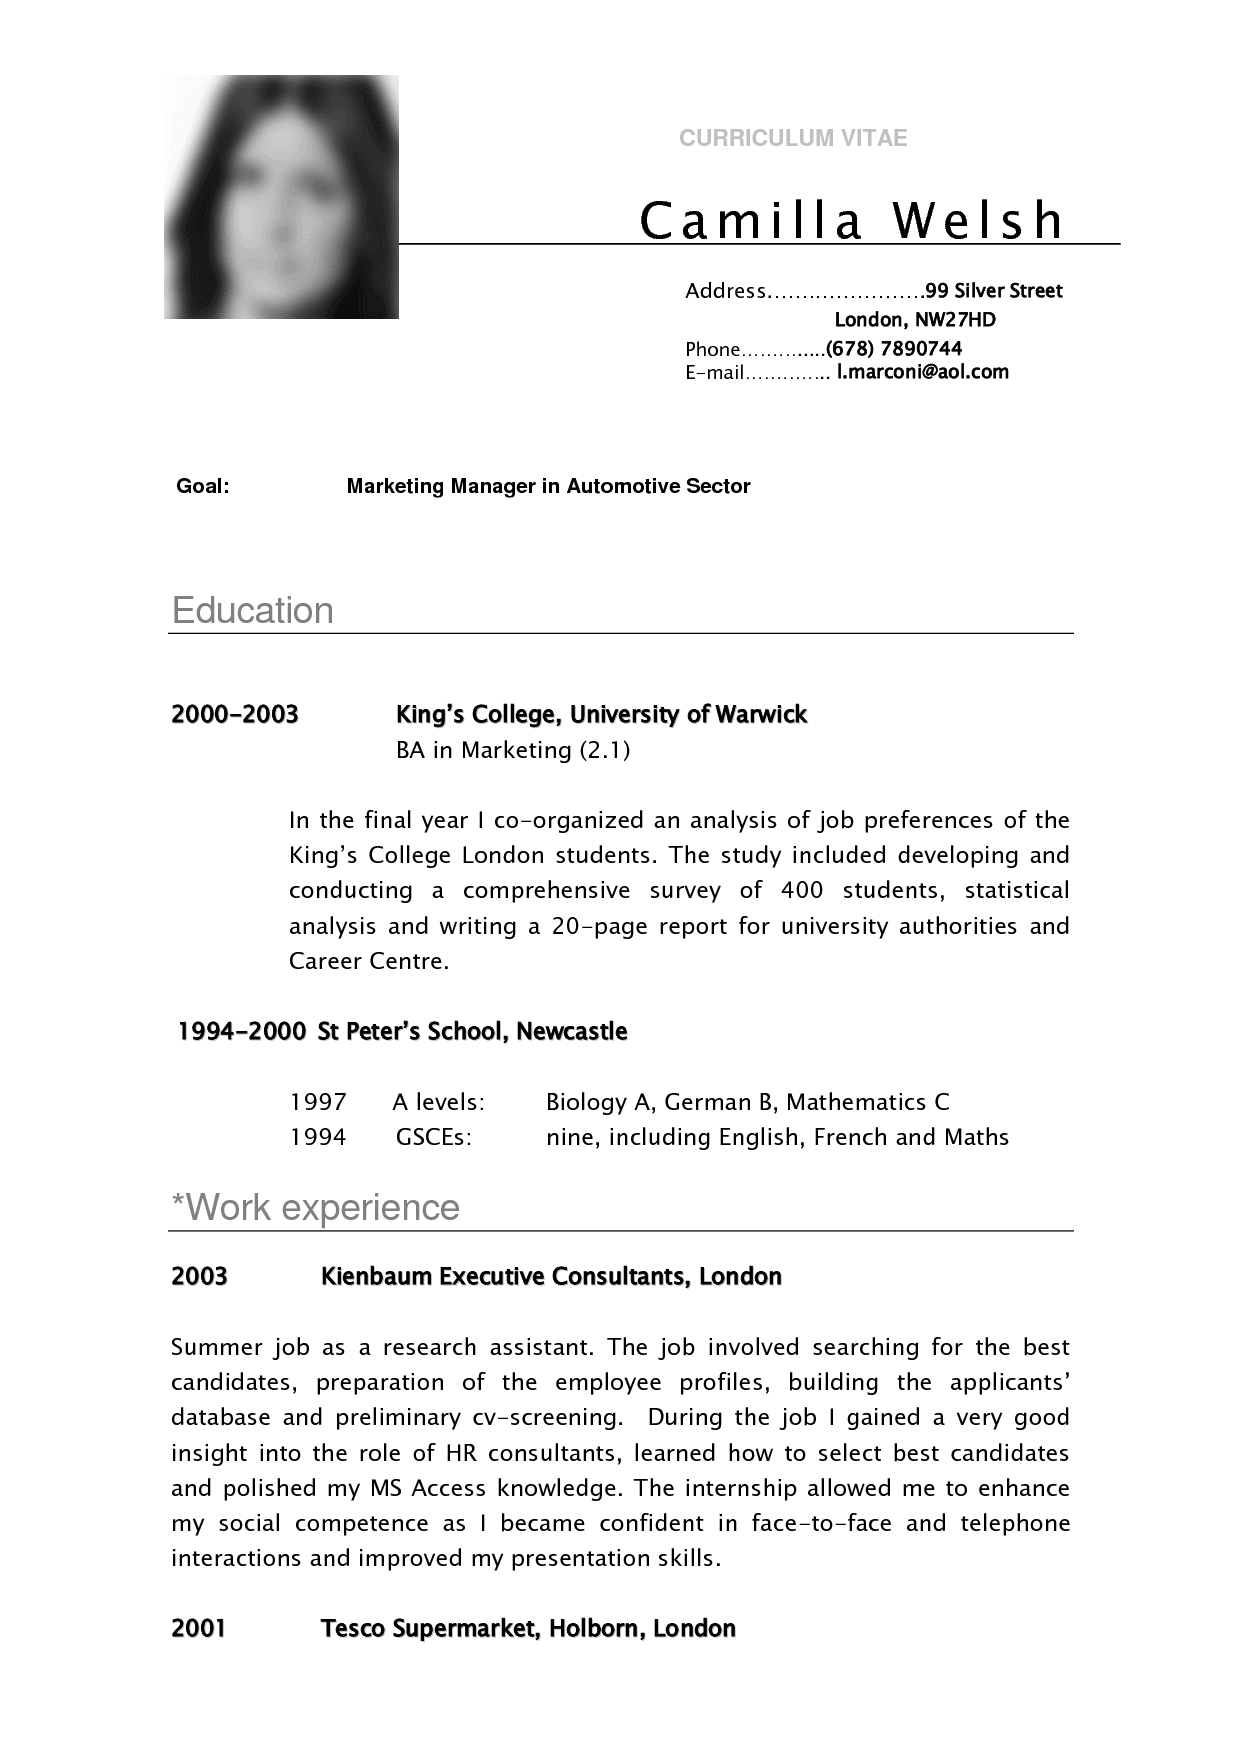 Cv Sample Curriculum Vitae Camilla Resume Pinterest